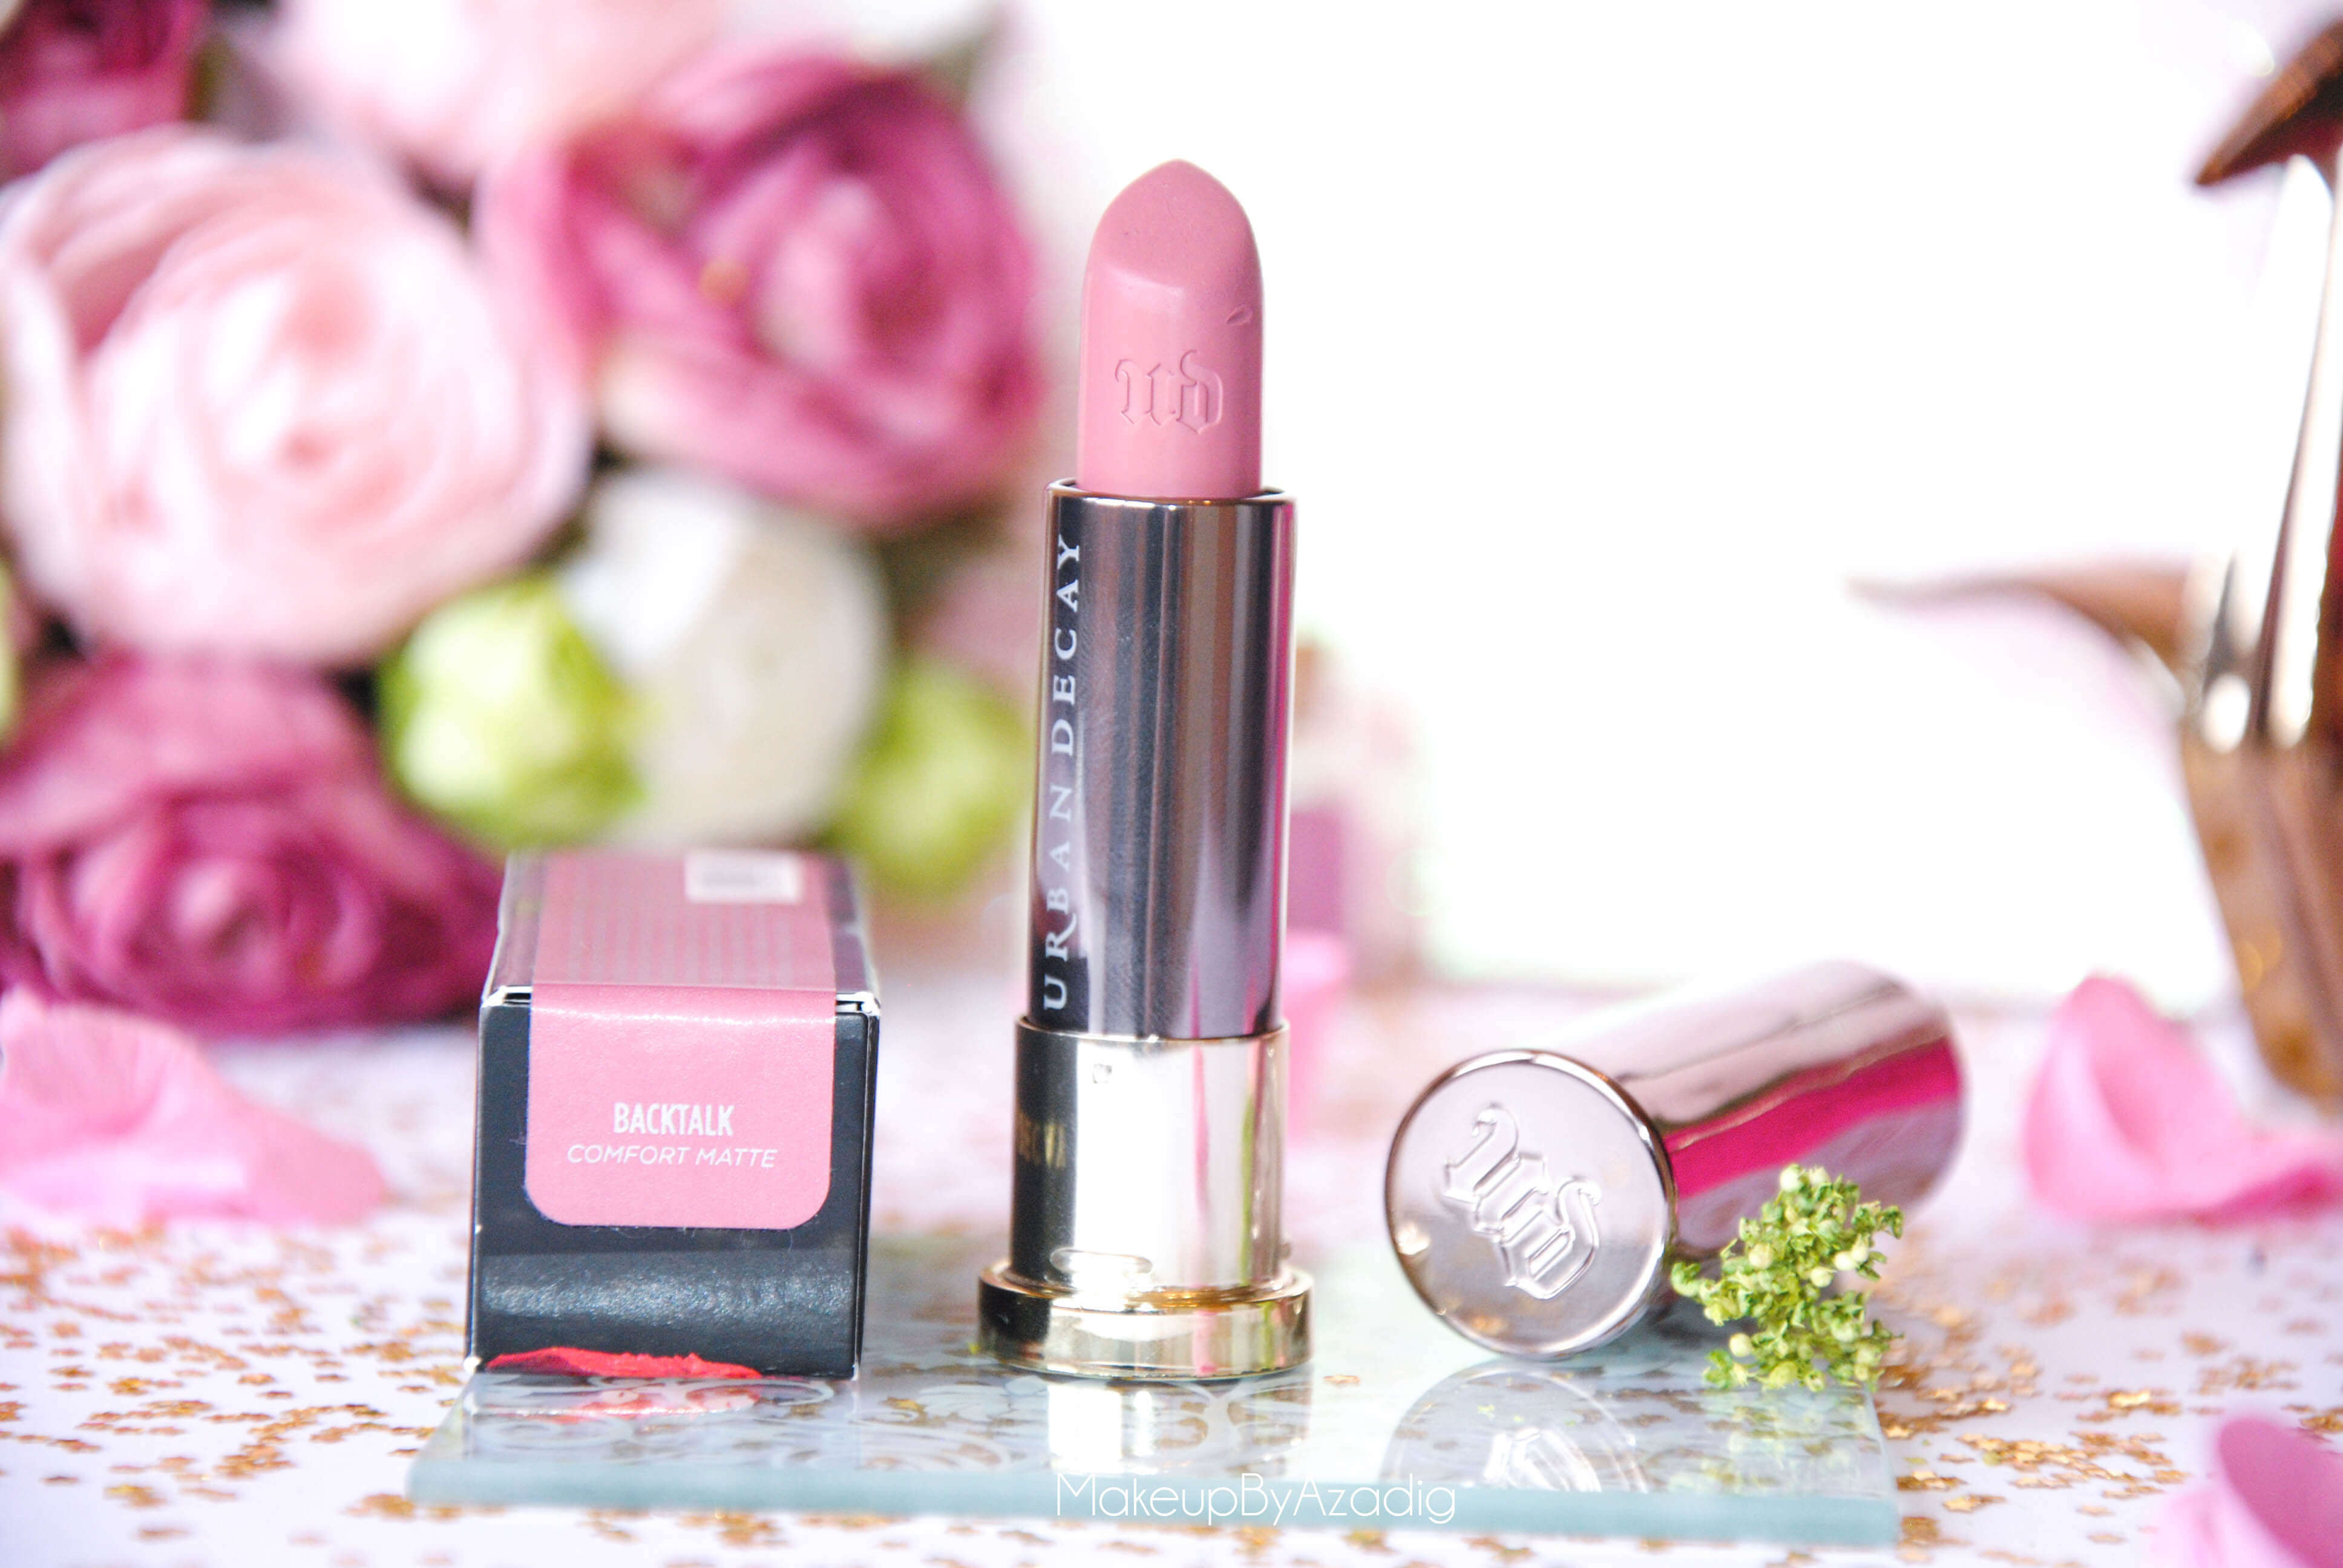 vice lipstick-urban decay-makeupbyazadig-backtalk-mauve-rouge a levres-avis-revue-swatch-review-troyes-blogueuse troyenne